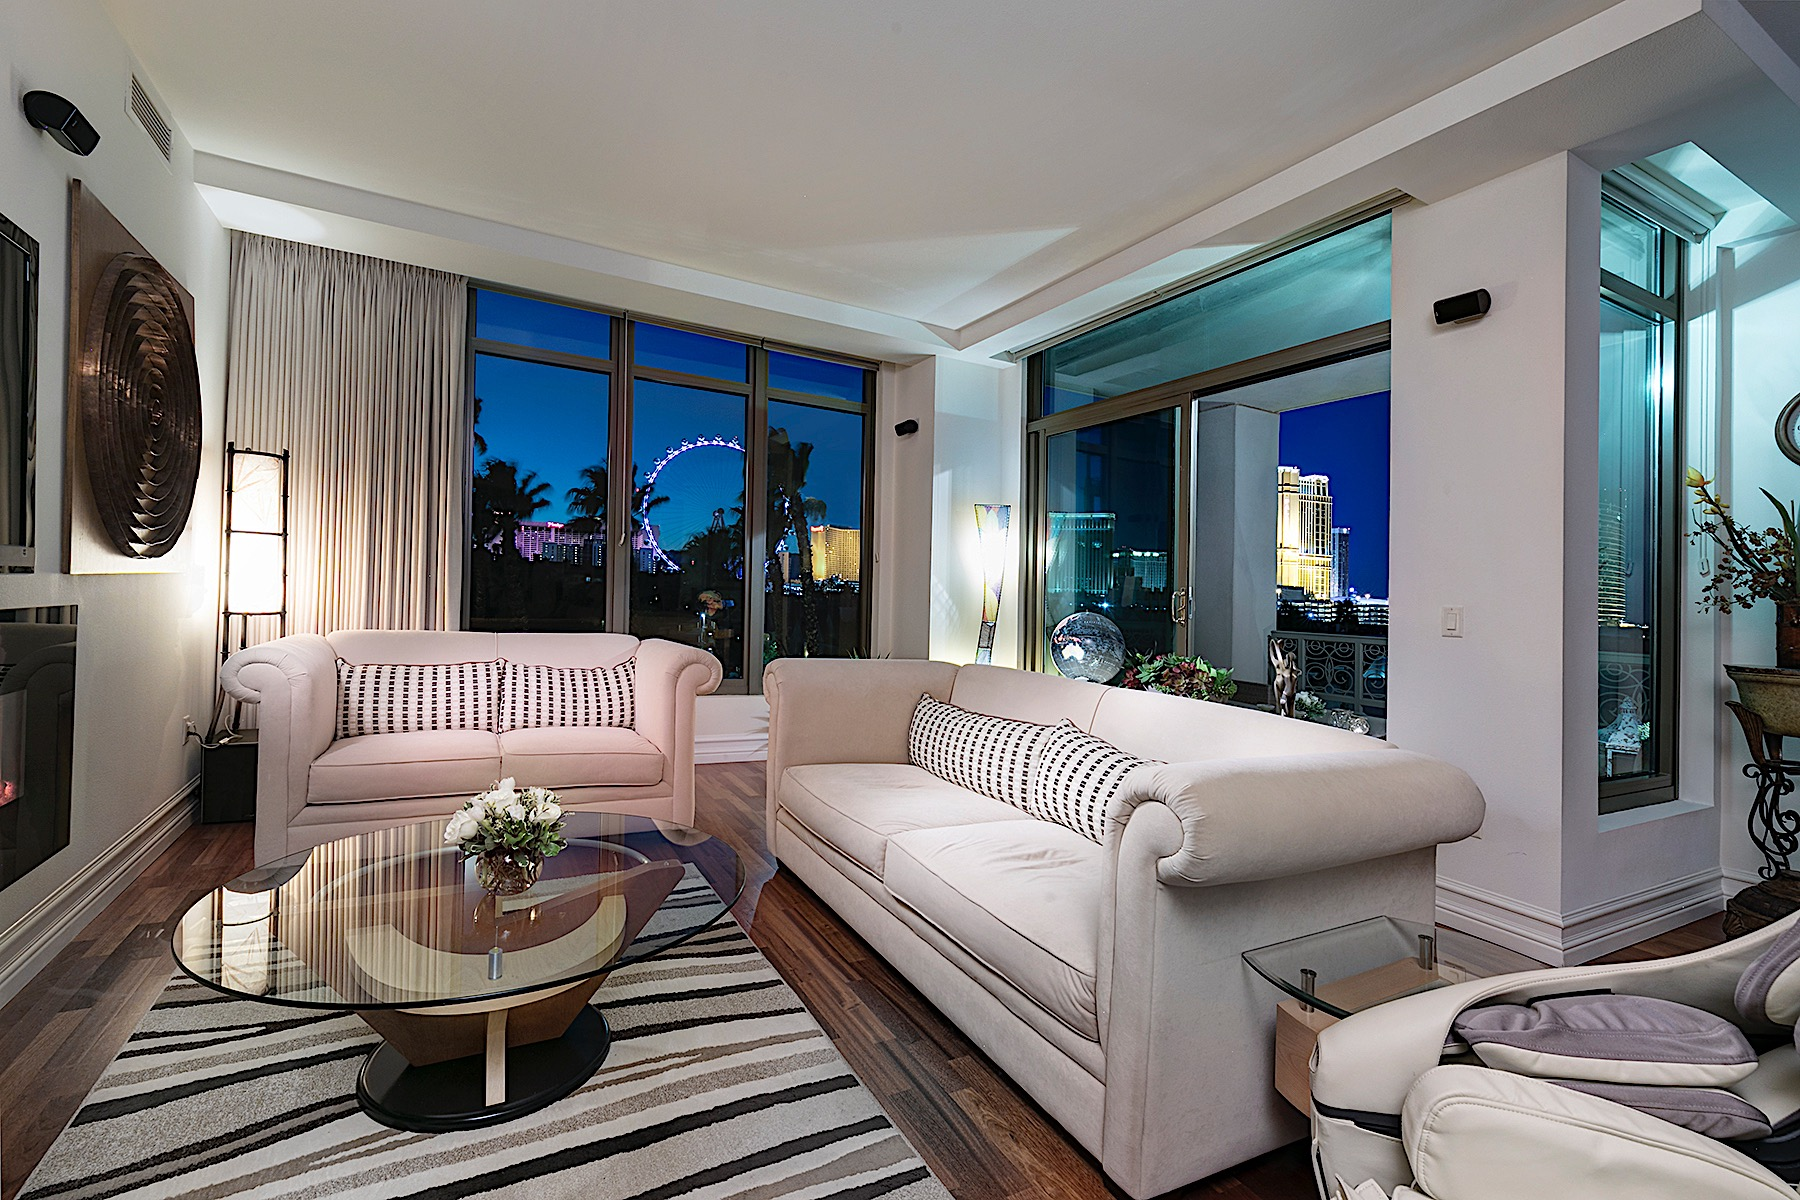 Condominium for Sale at The Crown Penthouse at Park Towers 1 Hughes Center Dr #402, Las Vegas, Nevada, 89169 United States